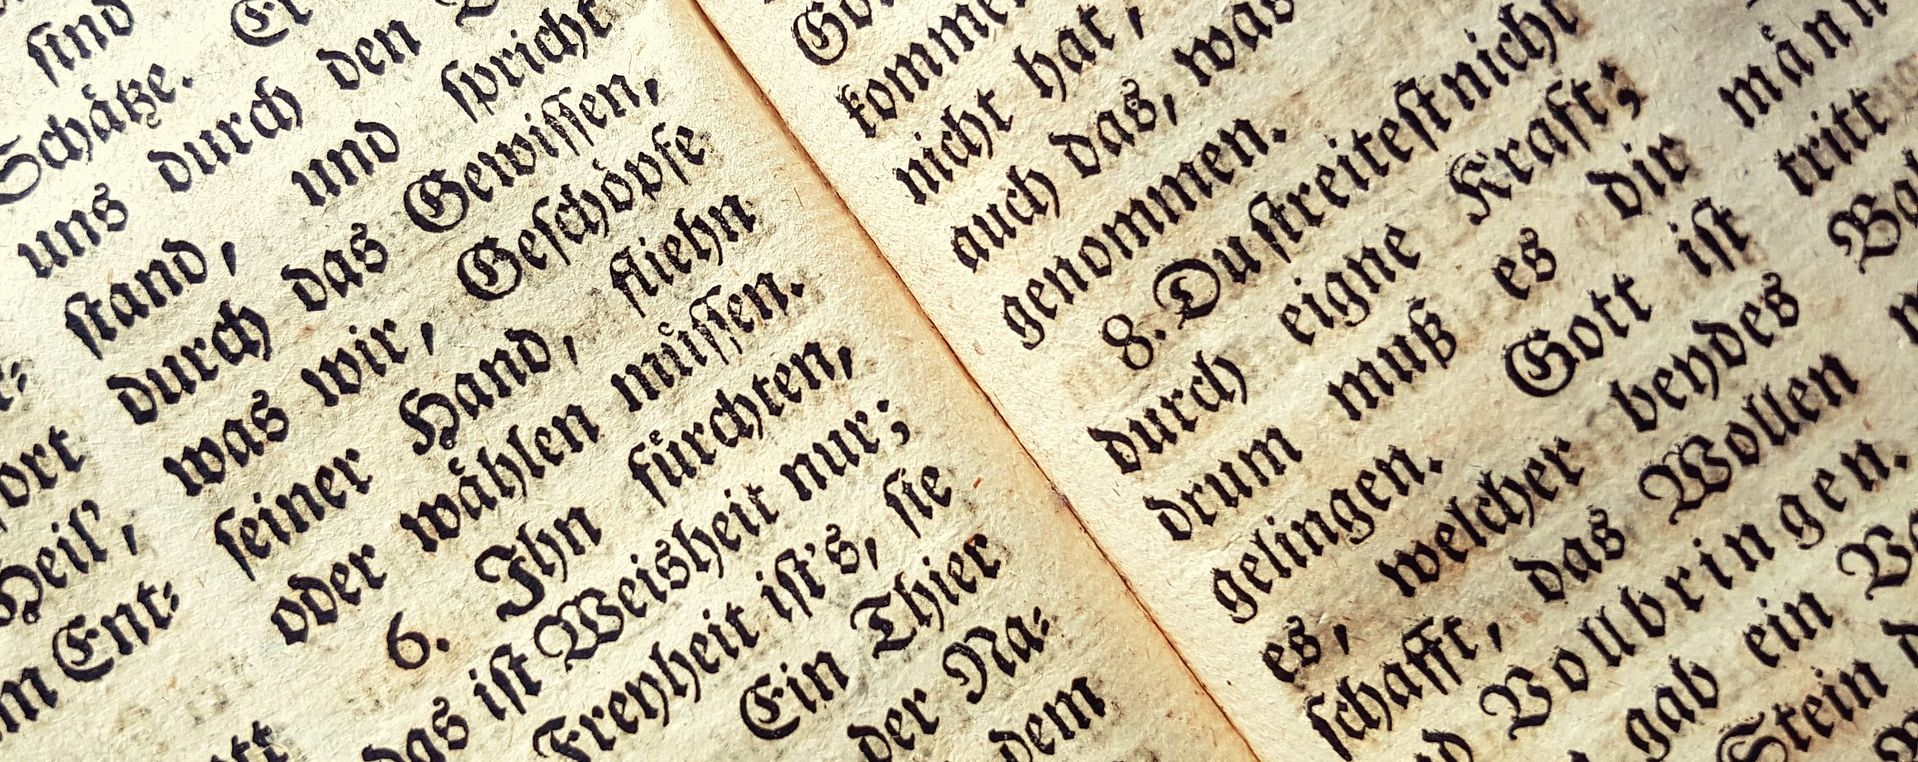 German Bibles mentioned pedophilia